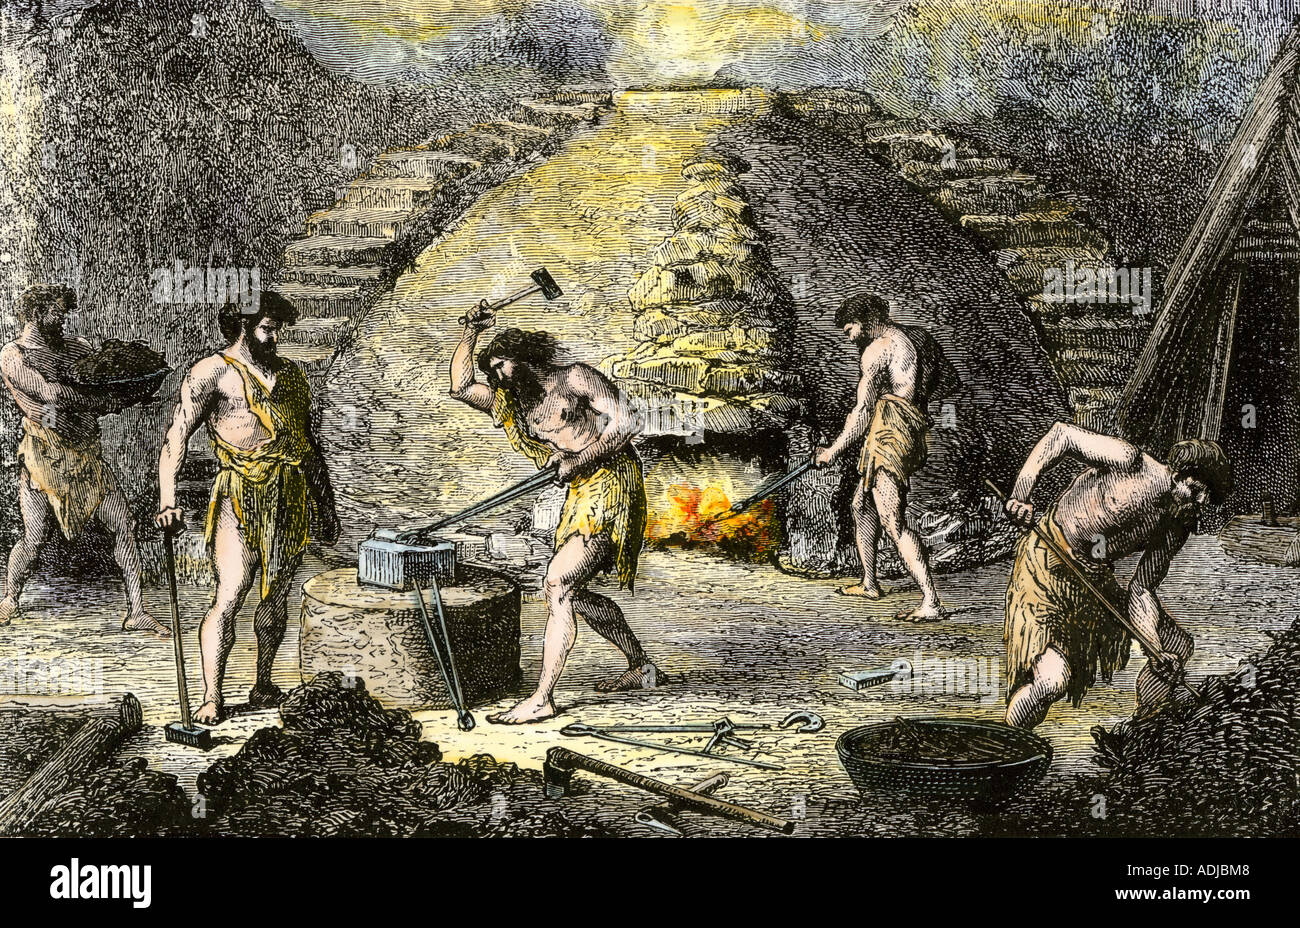 Prehistoric people learning how to work iron. Hand-colored woodcut - Stock Image